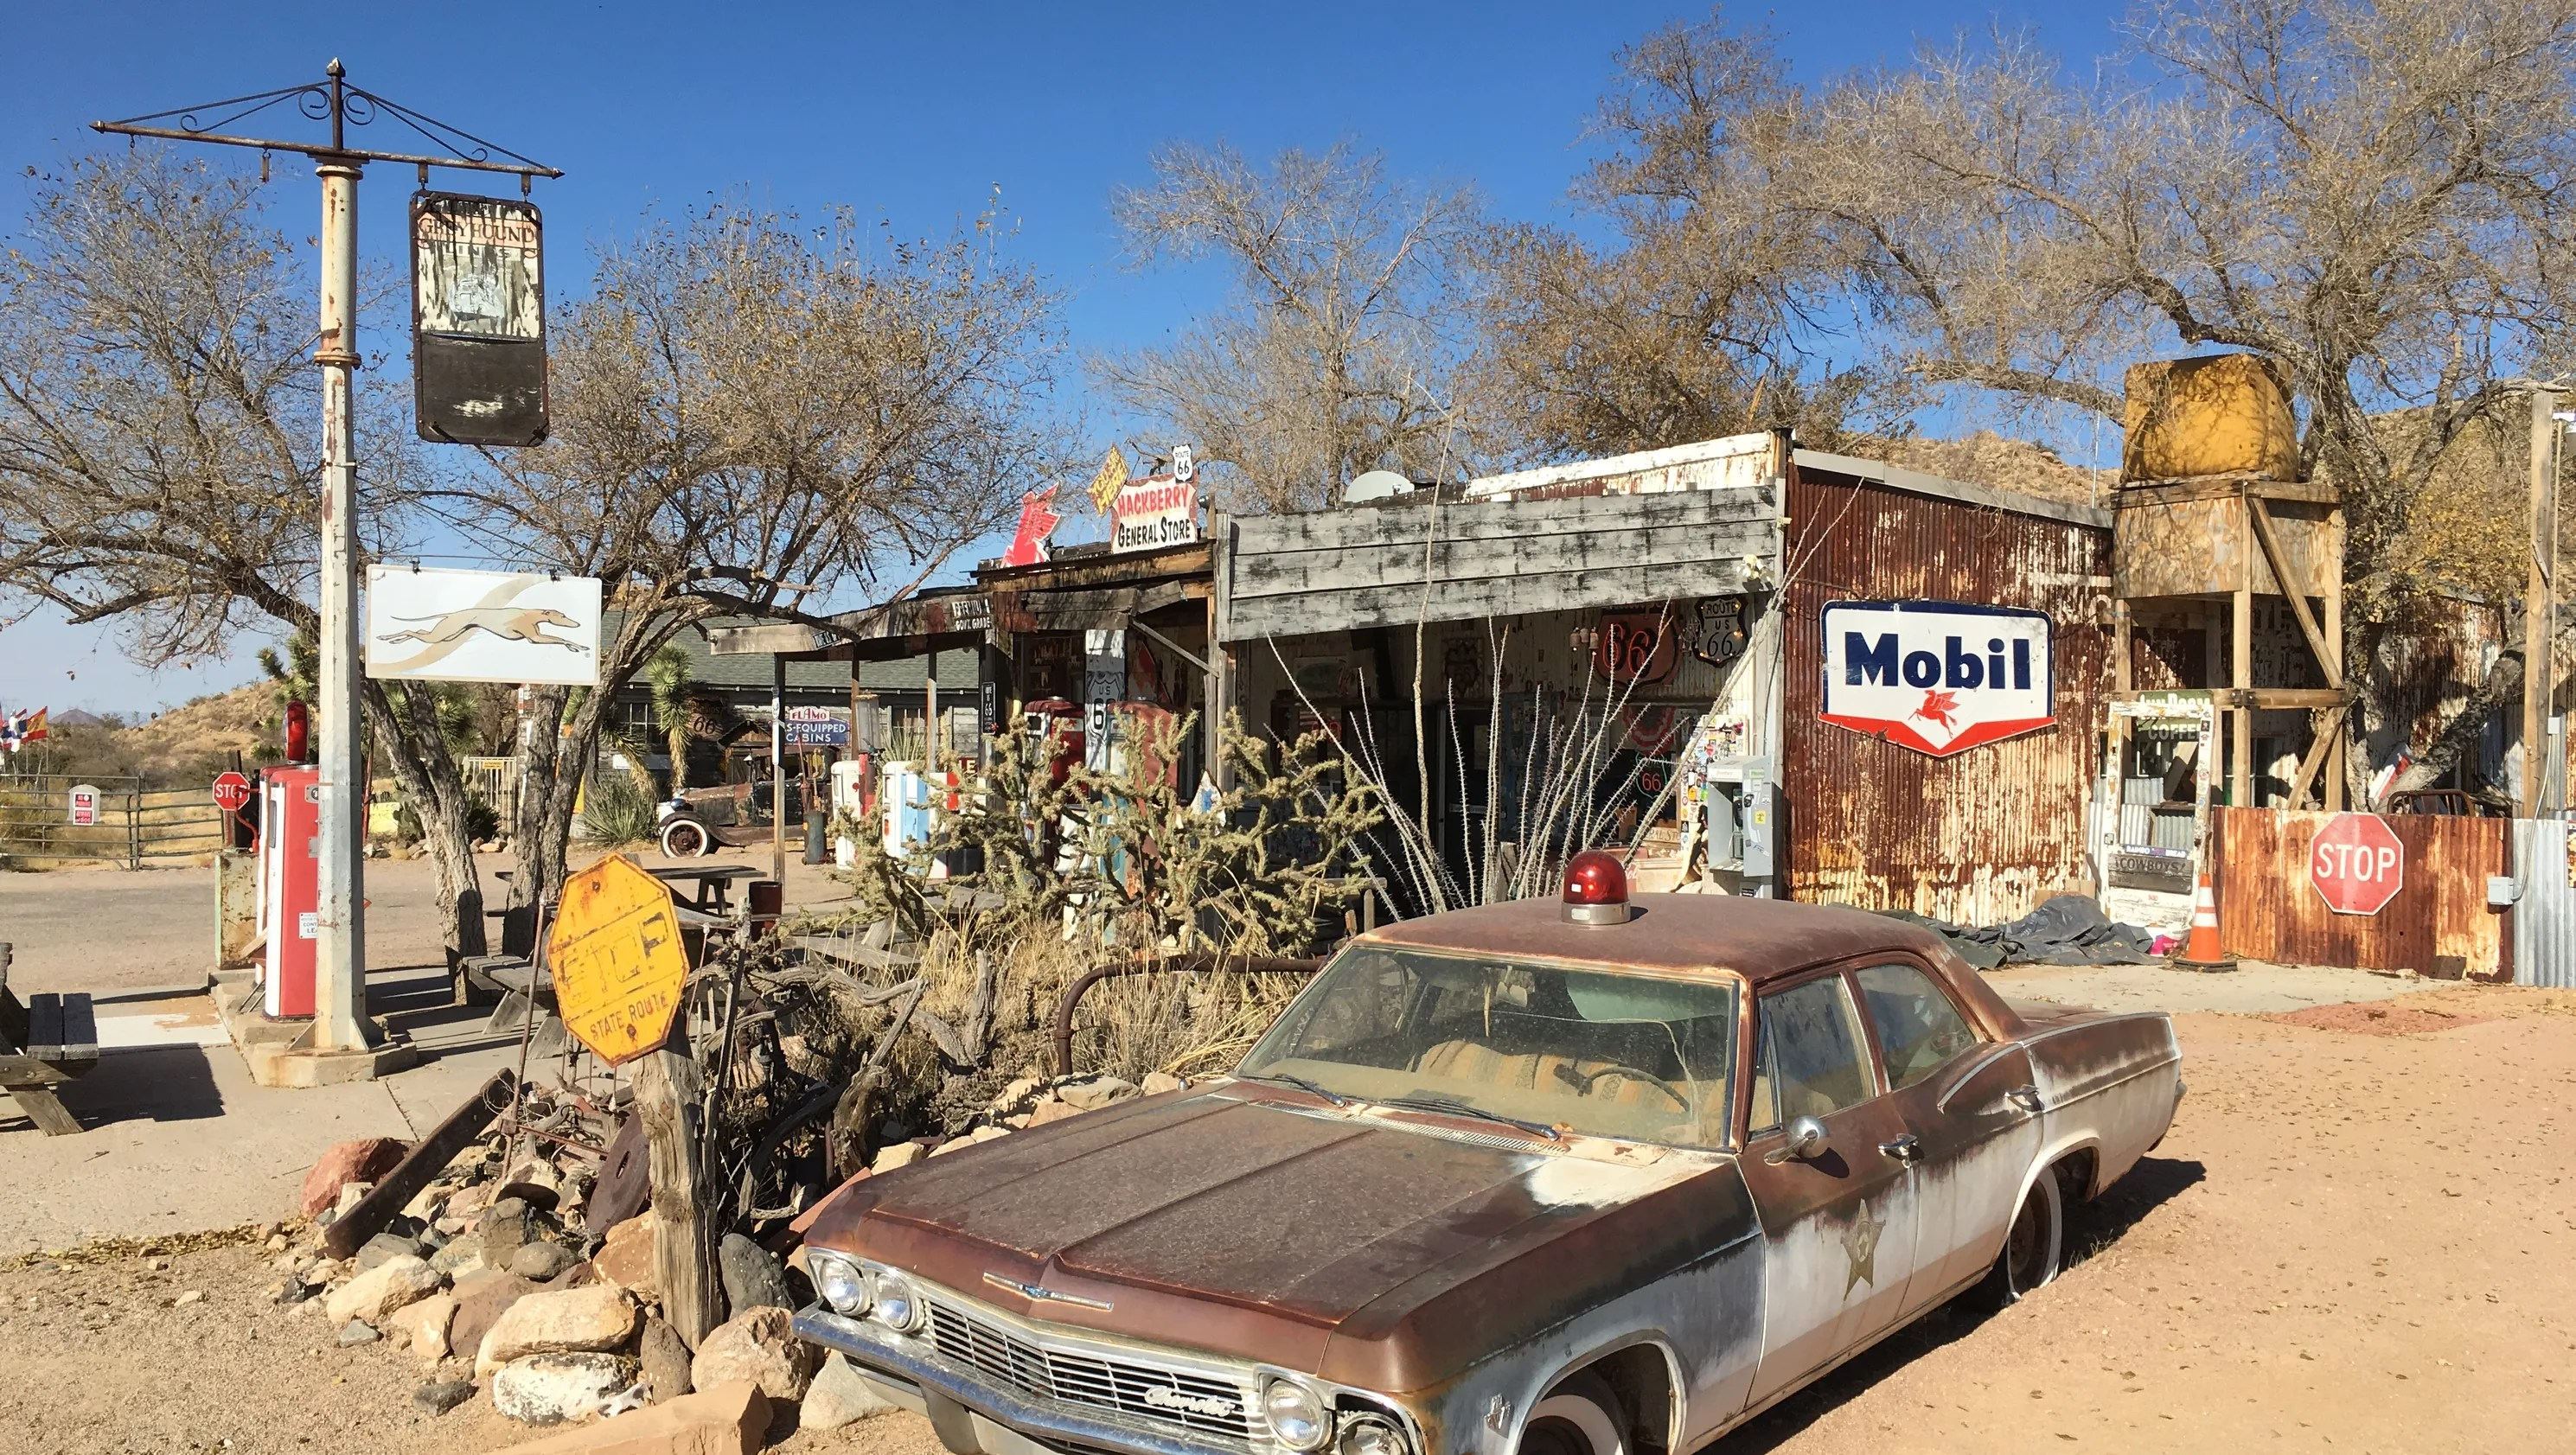 Hackberry General Store Fuels Nostalgia For Route 66